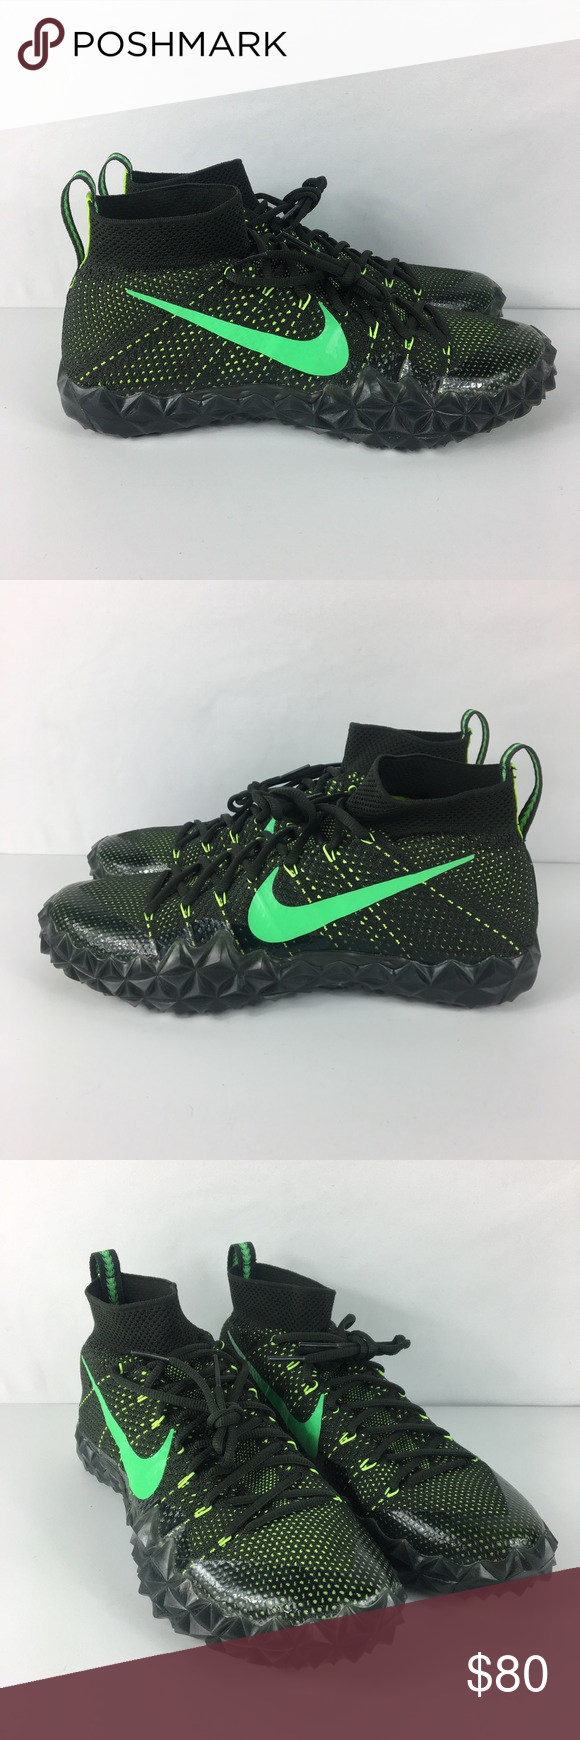 cheaper 9d2d4 f1daa Nike Alpha Sensory Turf Football Cleats Green Nike Alpha Sensory Turf  Football Cleats Sequoia Green 854312